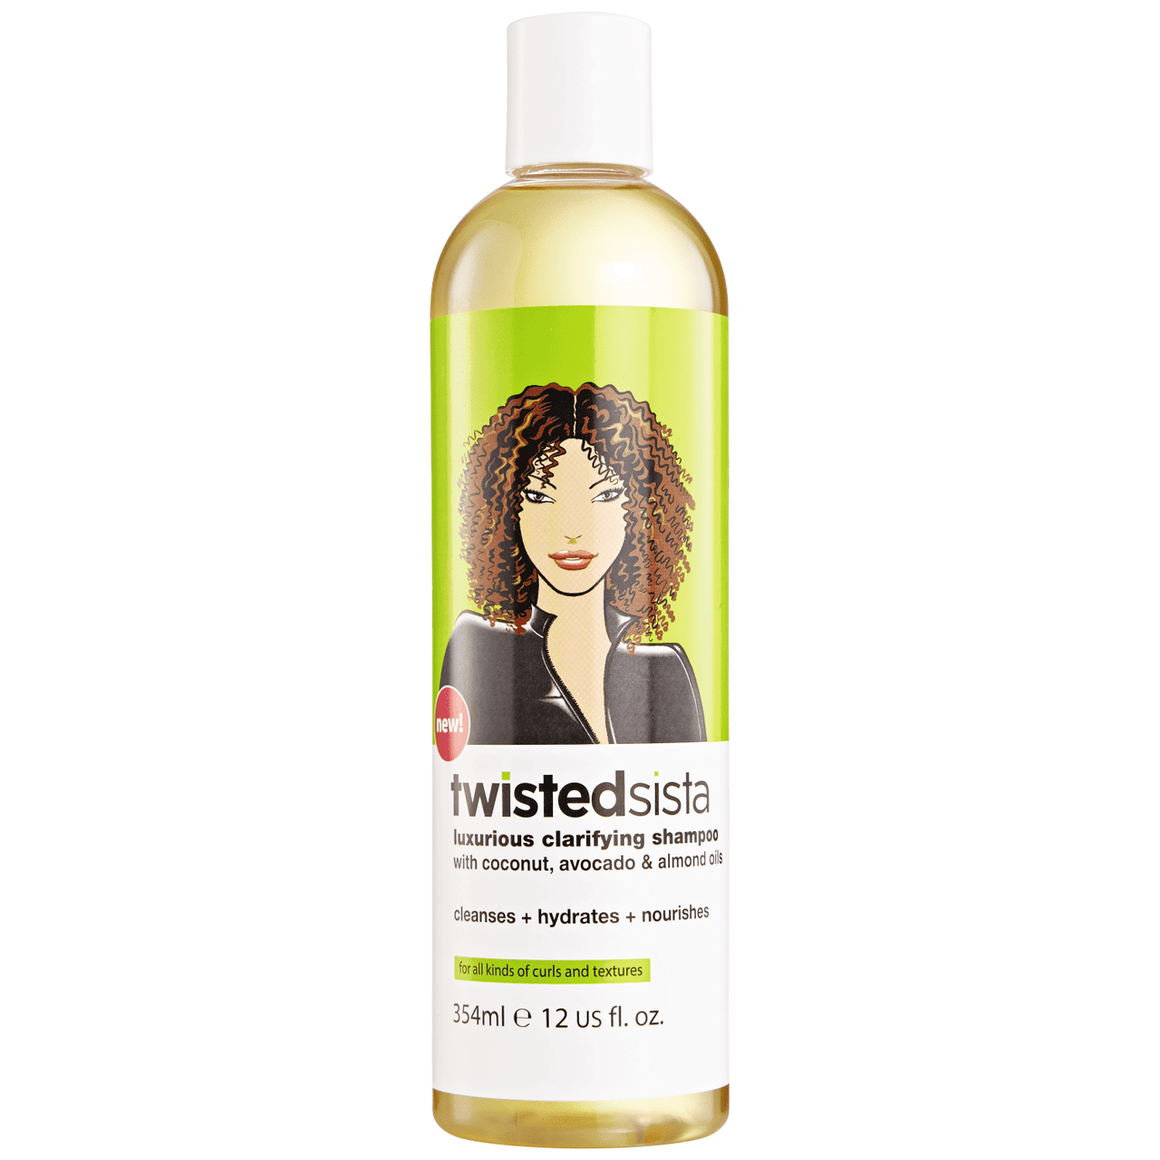 TWISTED SISTA LUXURIOUS CLARIFYING SHAMPOO, 354 ML